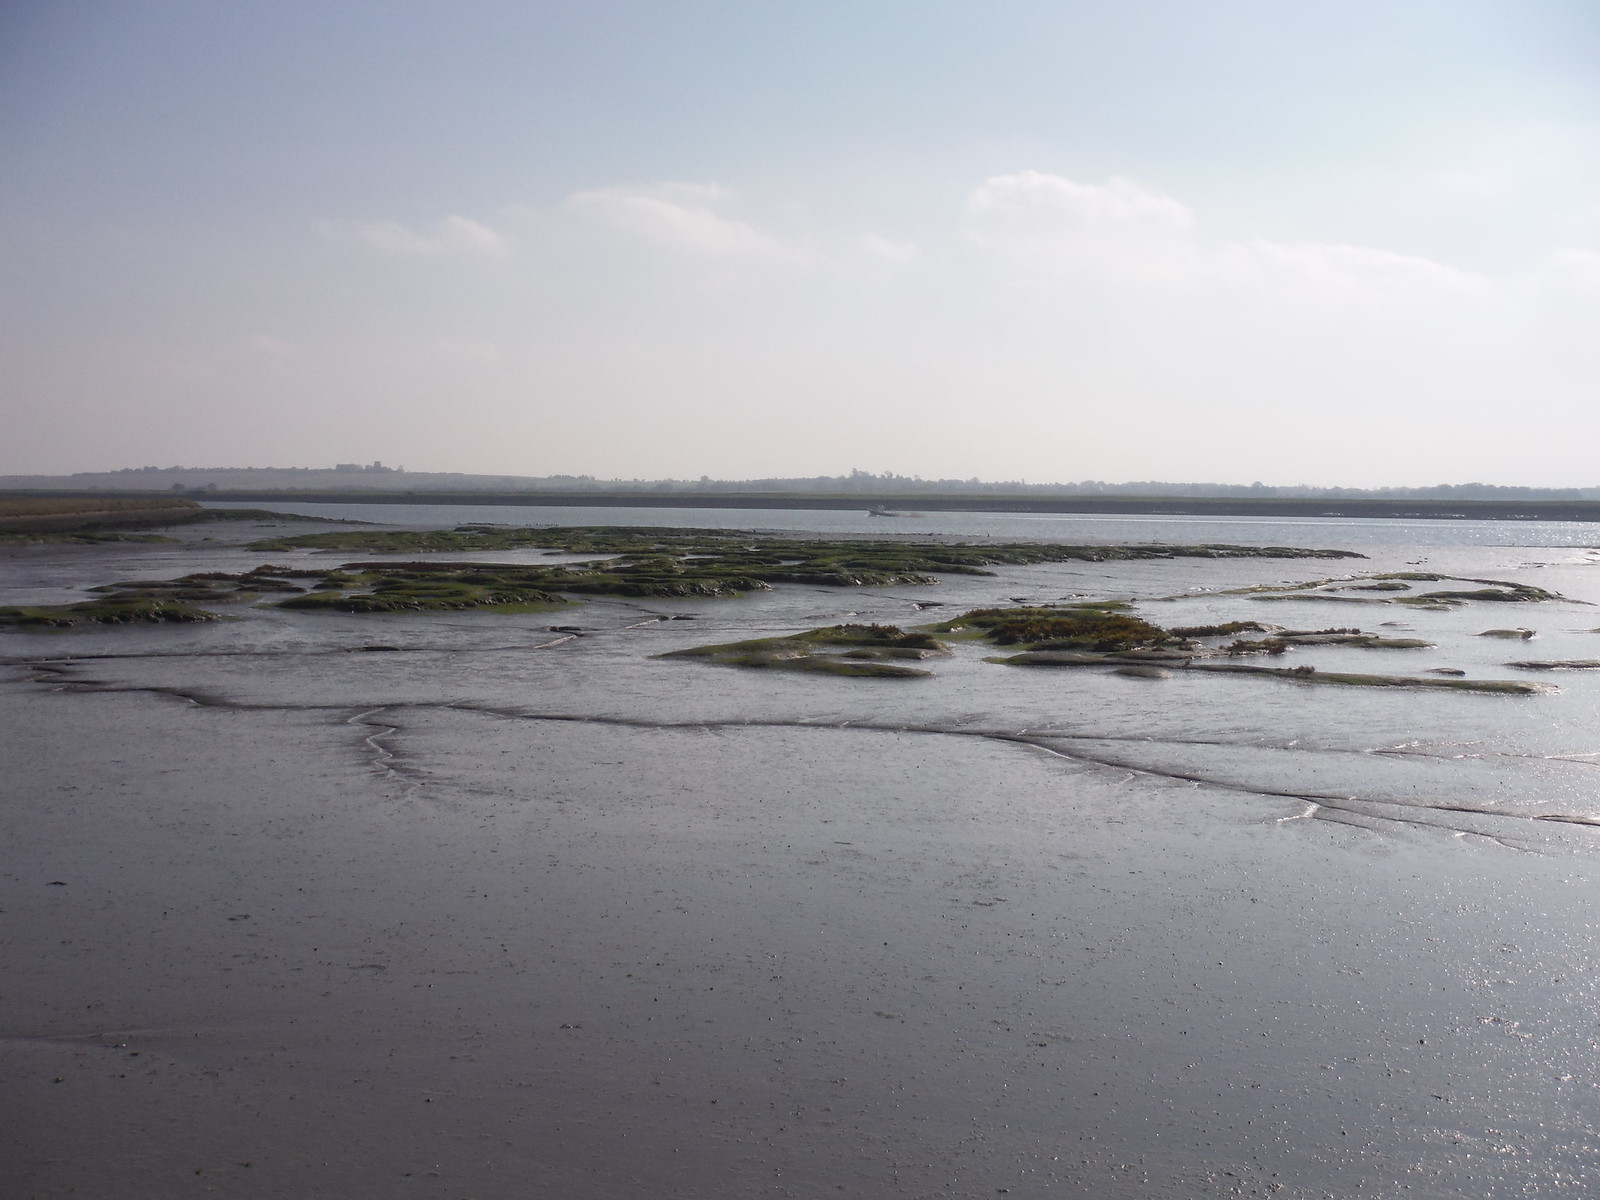 Mudflats and boat in river SWC Walk 162 North Fambridge to Burnham-on-Crouch